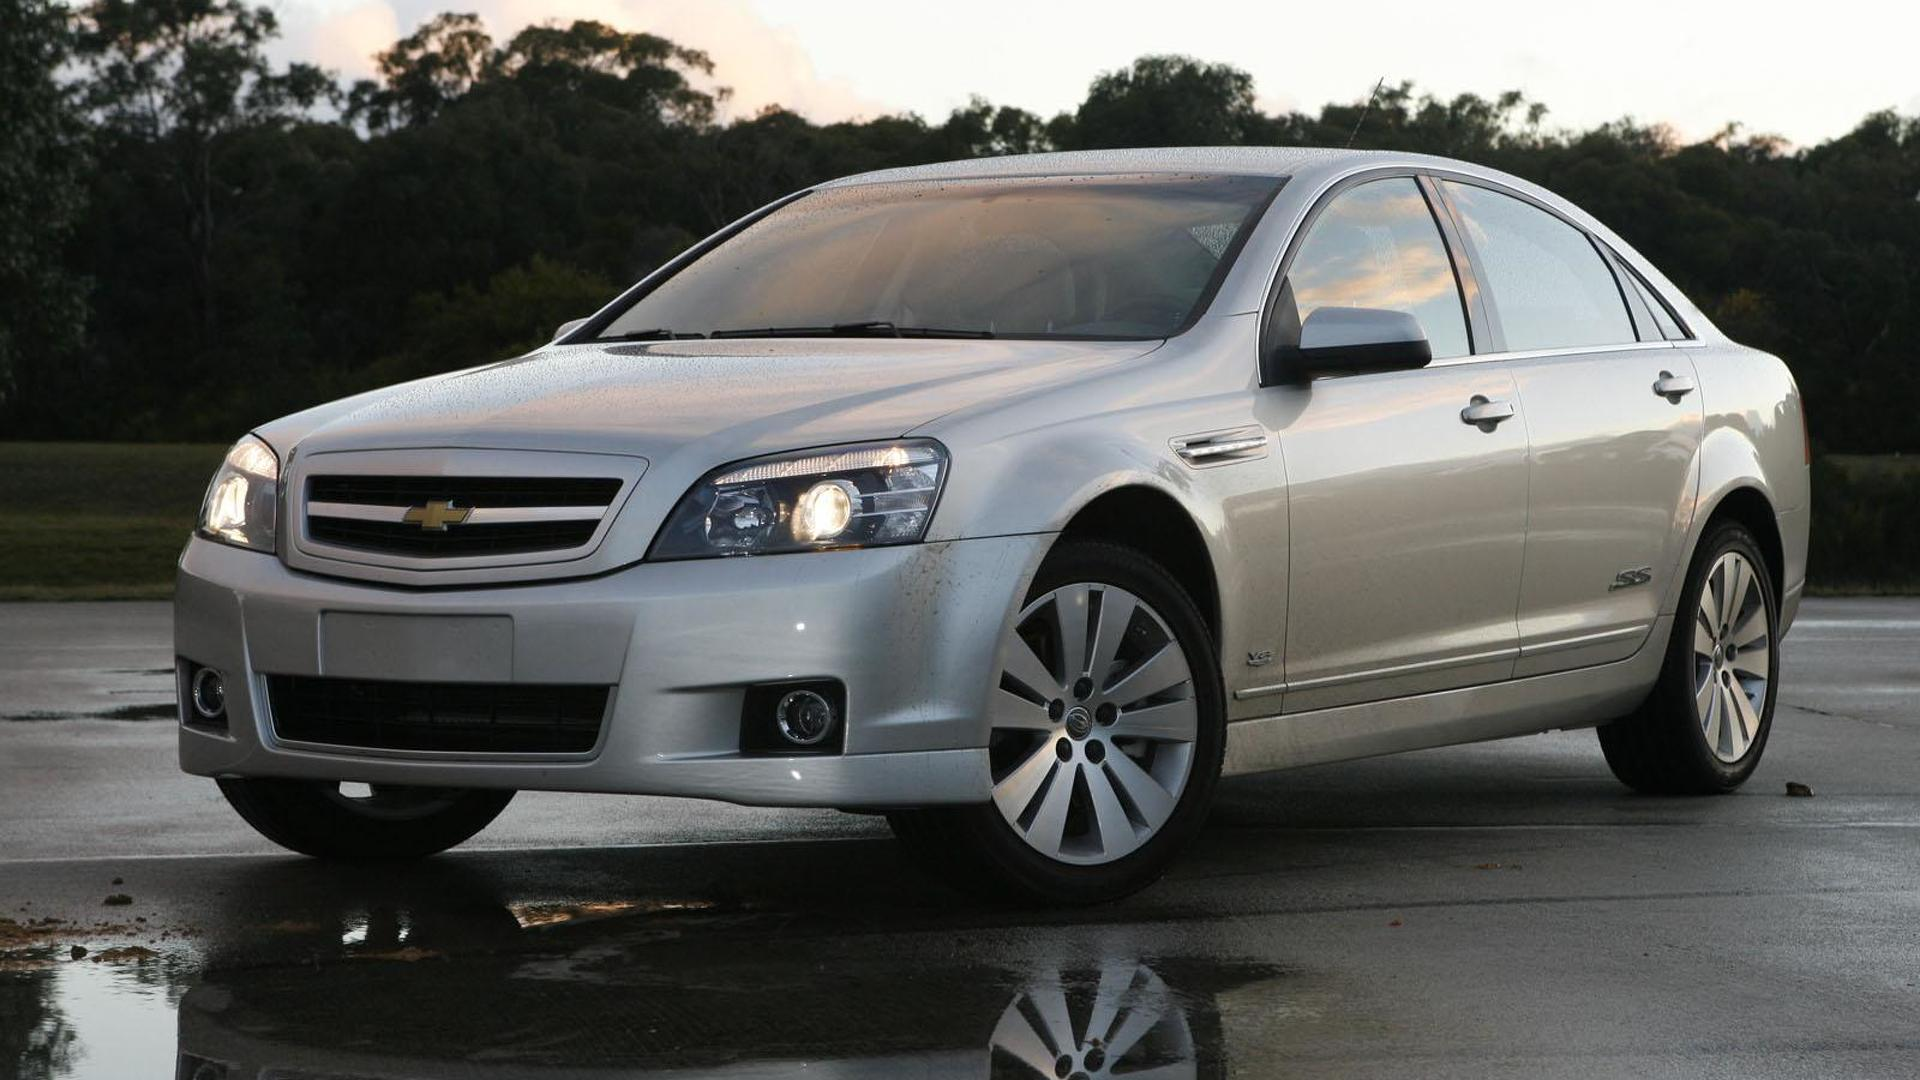 2014 Chevrolet SS to have a 6.2-liter V8 - report